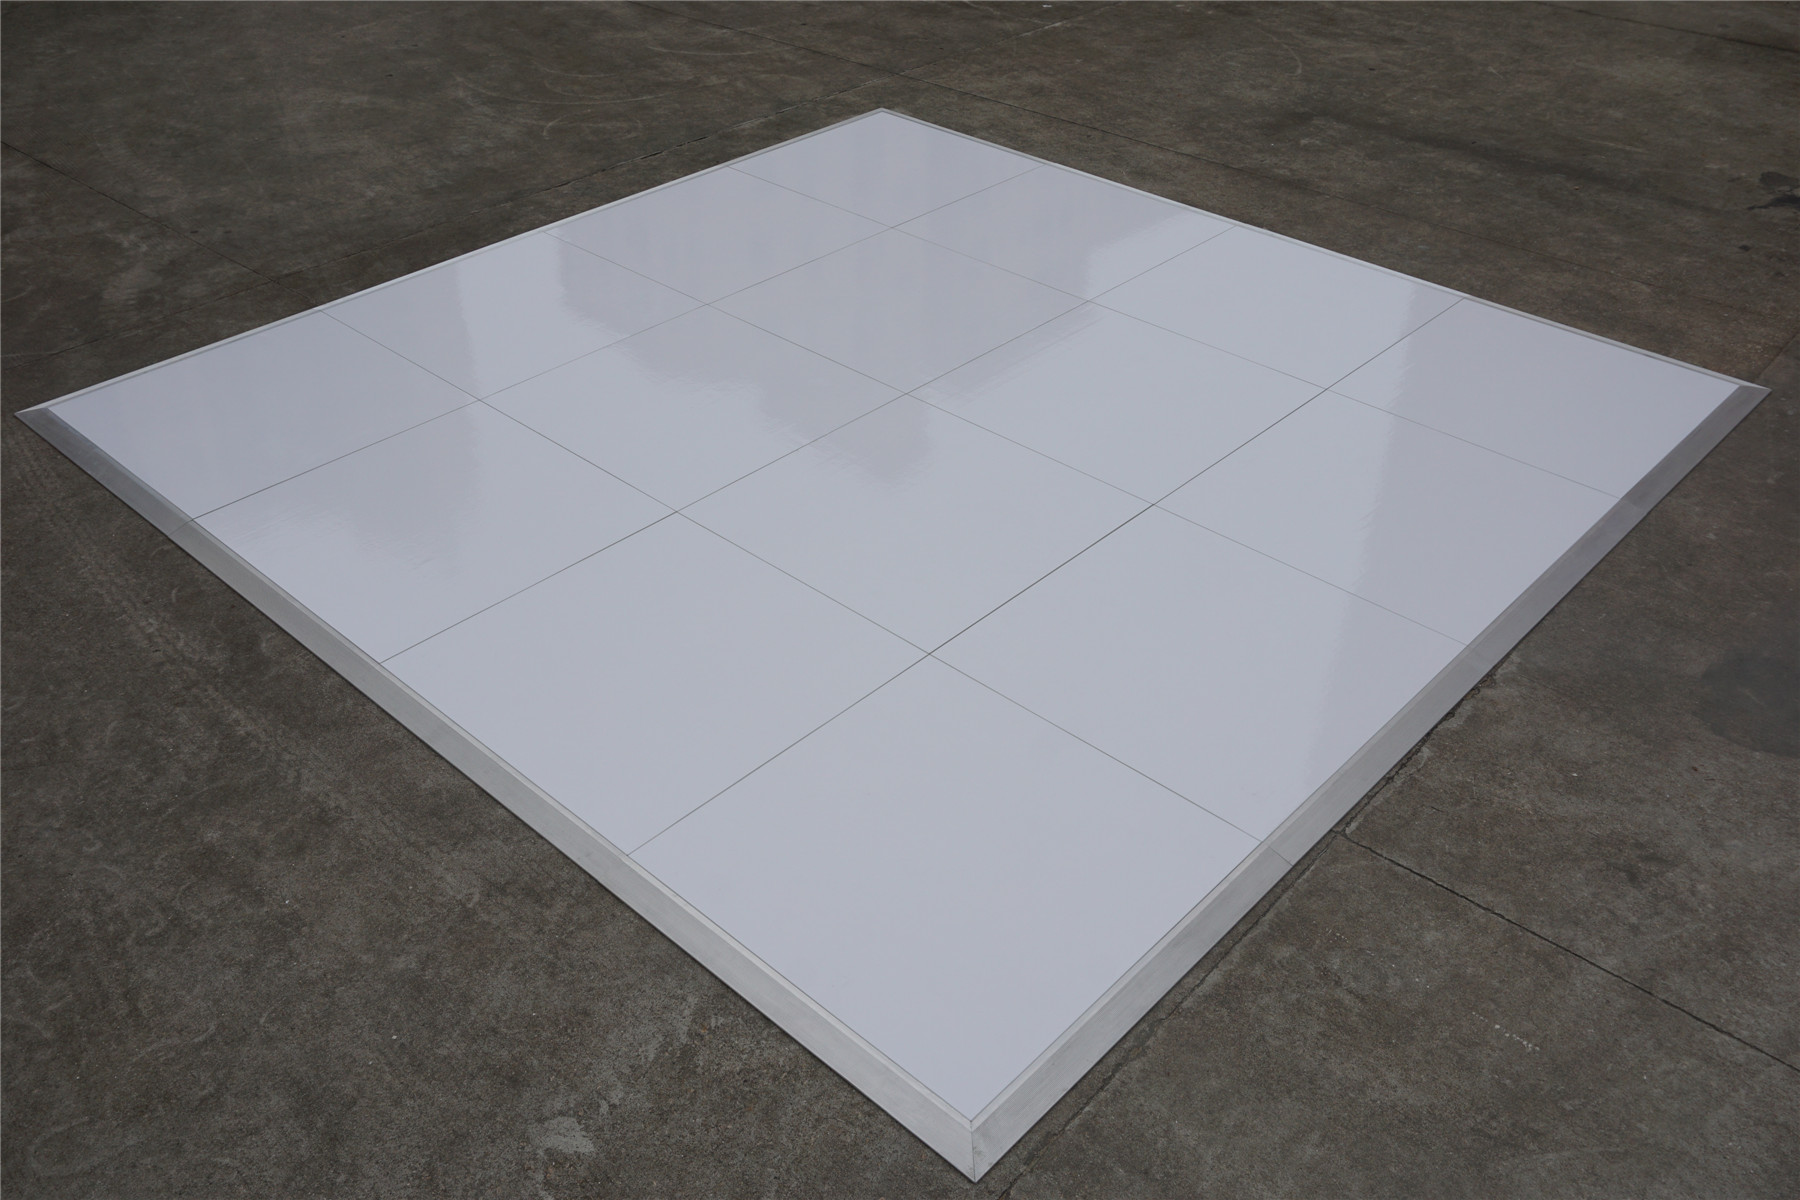 High gloss white dance floor --Interlock system ,no holes or joints on surface .